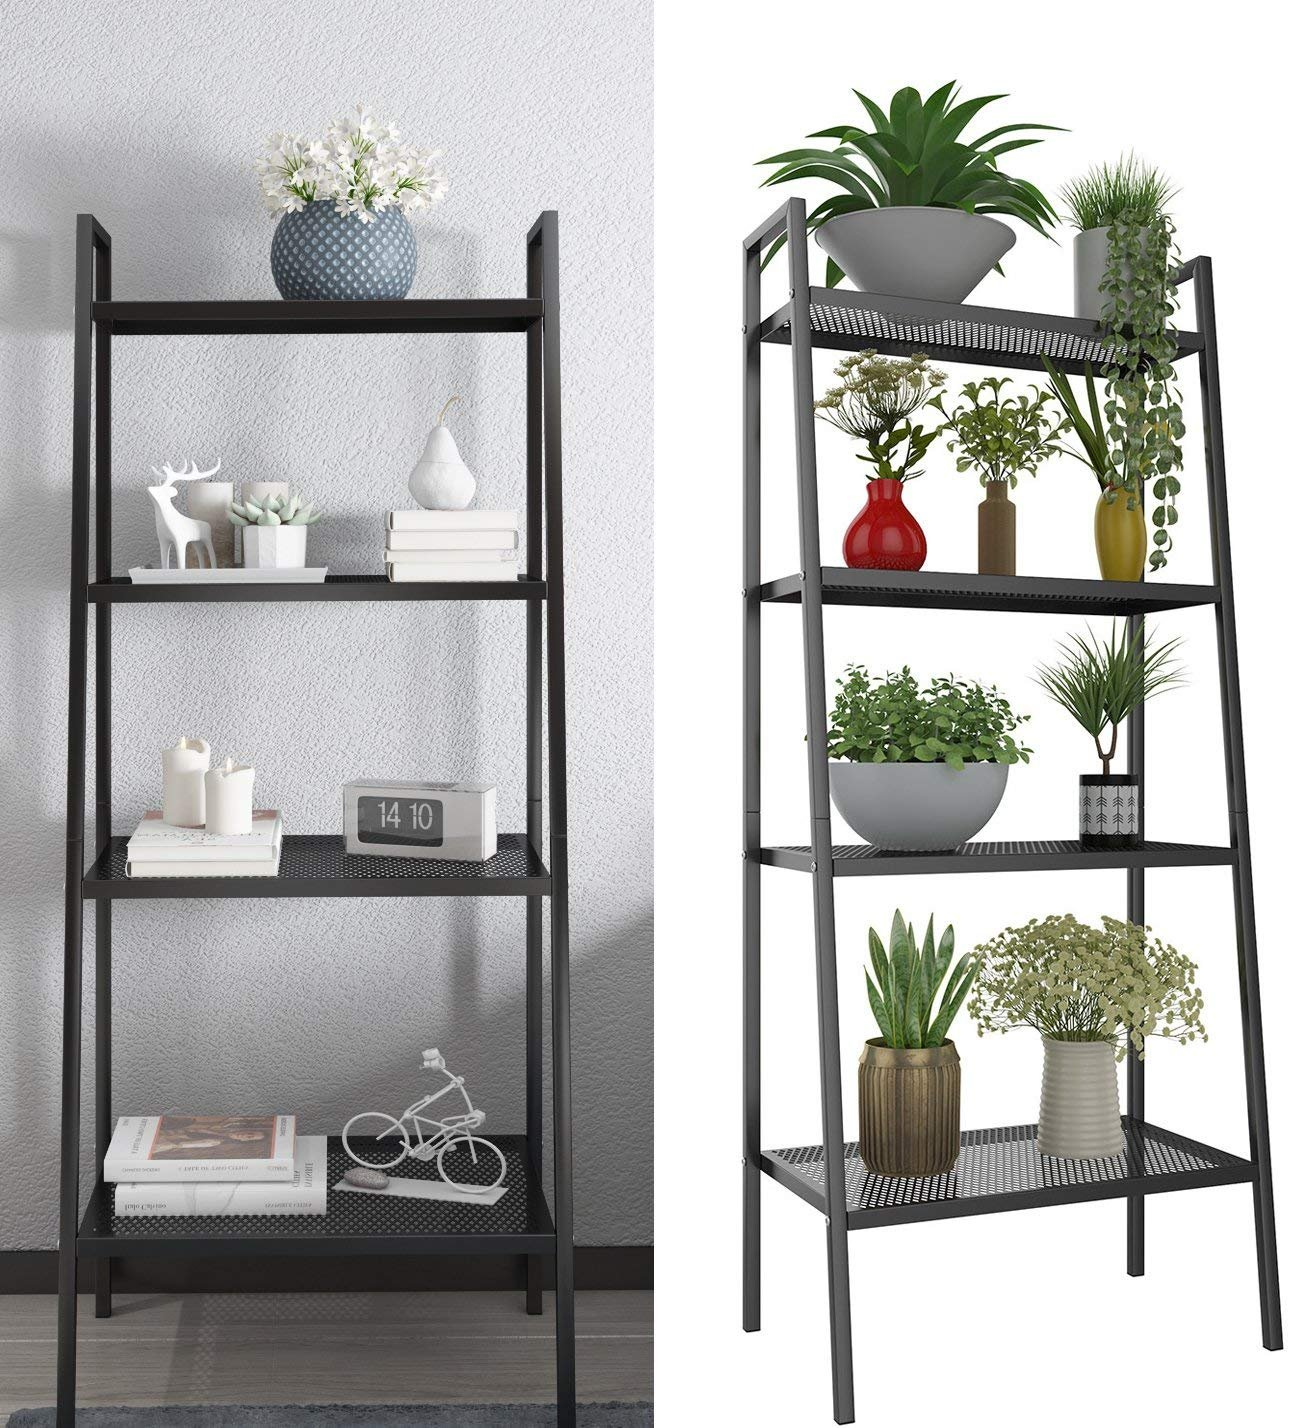 4 Tier Metal Ladder Bookshelf, Bookcase Plant Flower Stand Display Shelf Unit Storage Rack for Kitchen Living Room Bathroom Balcony Office (Ladder Shelf-4 Tier-Black) - ➤Simple & Stylish---Stylish look and simple design adds a modern touch to the facade of your home or business. Add this A-frame shelf to your office, bedroom or living room for an instant upgrade ➤Practical & Multi-function Use---The ladder shelf is both functional and versatile, it is a perfect addition to living rooms, bedrooms, kitchens, or any rooms that needs extra storage space. Various kinds of stuffs, such as decorative plants, photos, books, knickknacks, can get their position easily ➤Space-Saving---4-tier open shelving unit gives you ample area for placing toiletries, towels, sundries, shoes, books, plants, spice, or organizing books, office supplies, photo frames and other objects, and keeps your home neat, tidy and organized. You can place it in any limited space, in your bathroom, office or living room etc. - living-room-furniture, living-room, bookcases-bookshelves - 8142x8ypdIL -